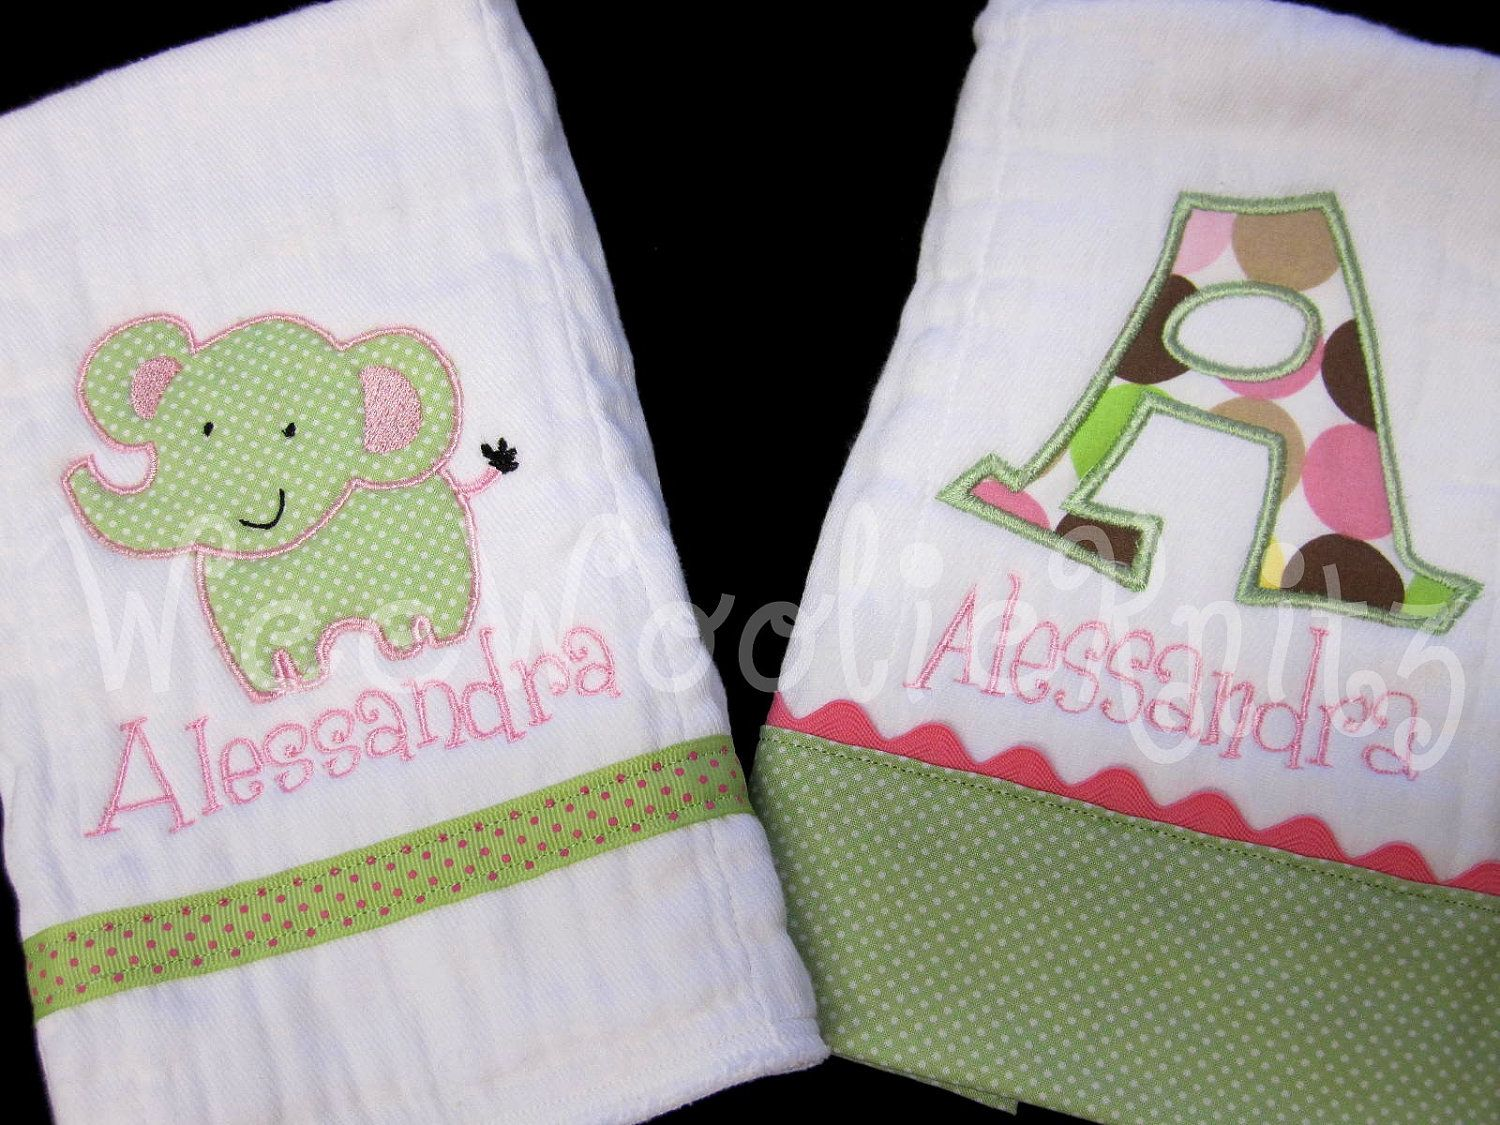 Personalized Elephant Burp Cloths Newborn Baby Girls Boutique Style Baby Shower Gift Jungle NurseryCustom Applique by WeeWoolieKnitz on Etsy https://www.etsy.com/listing/89632100/personalized-elephant-burp-cloths